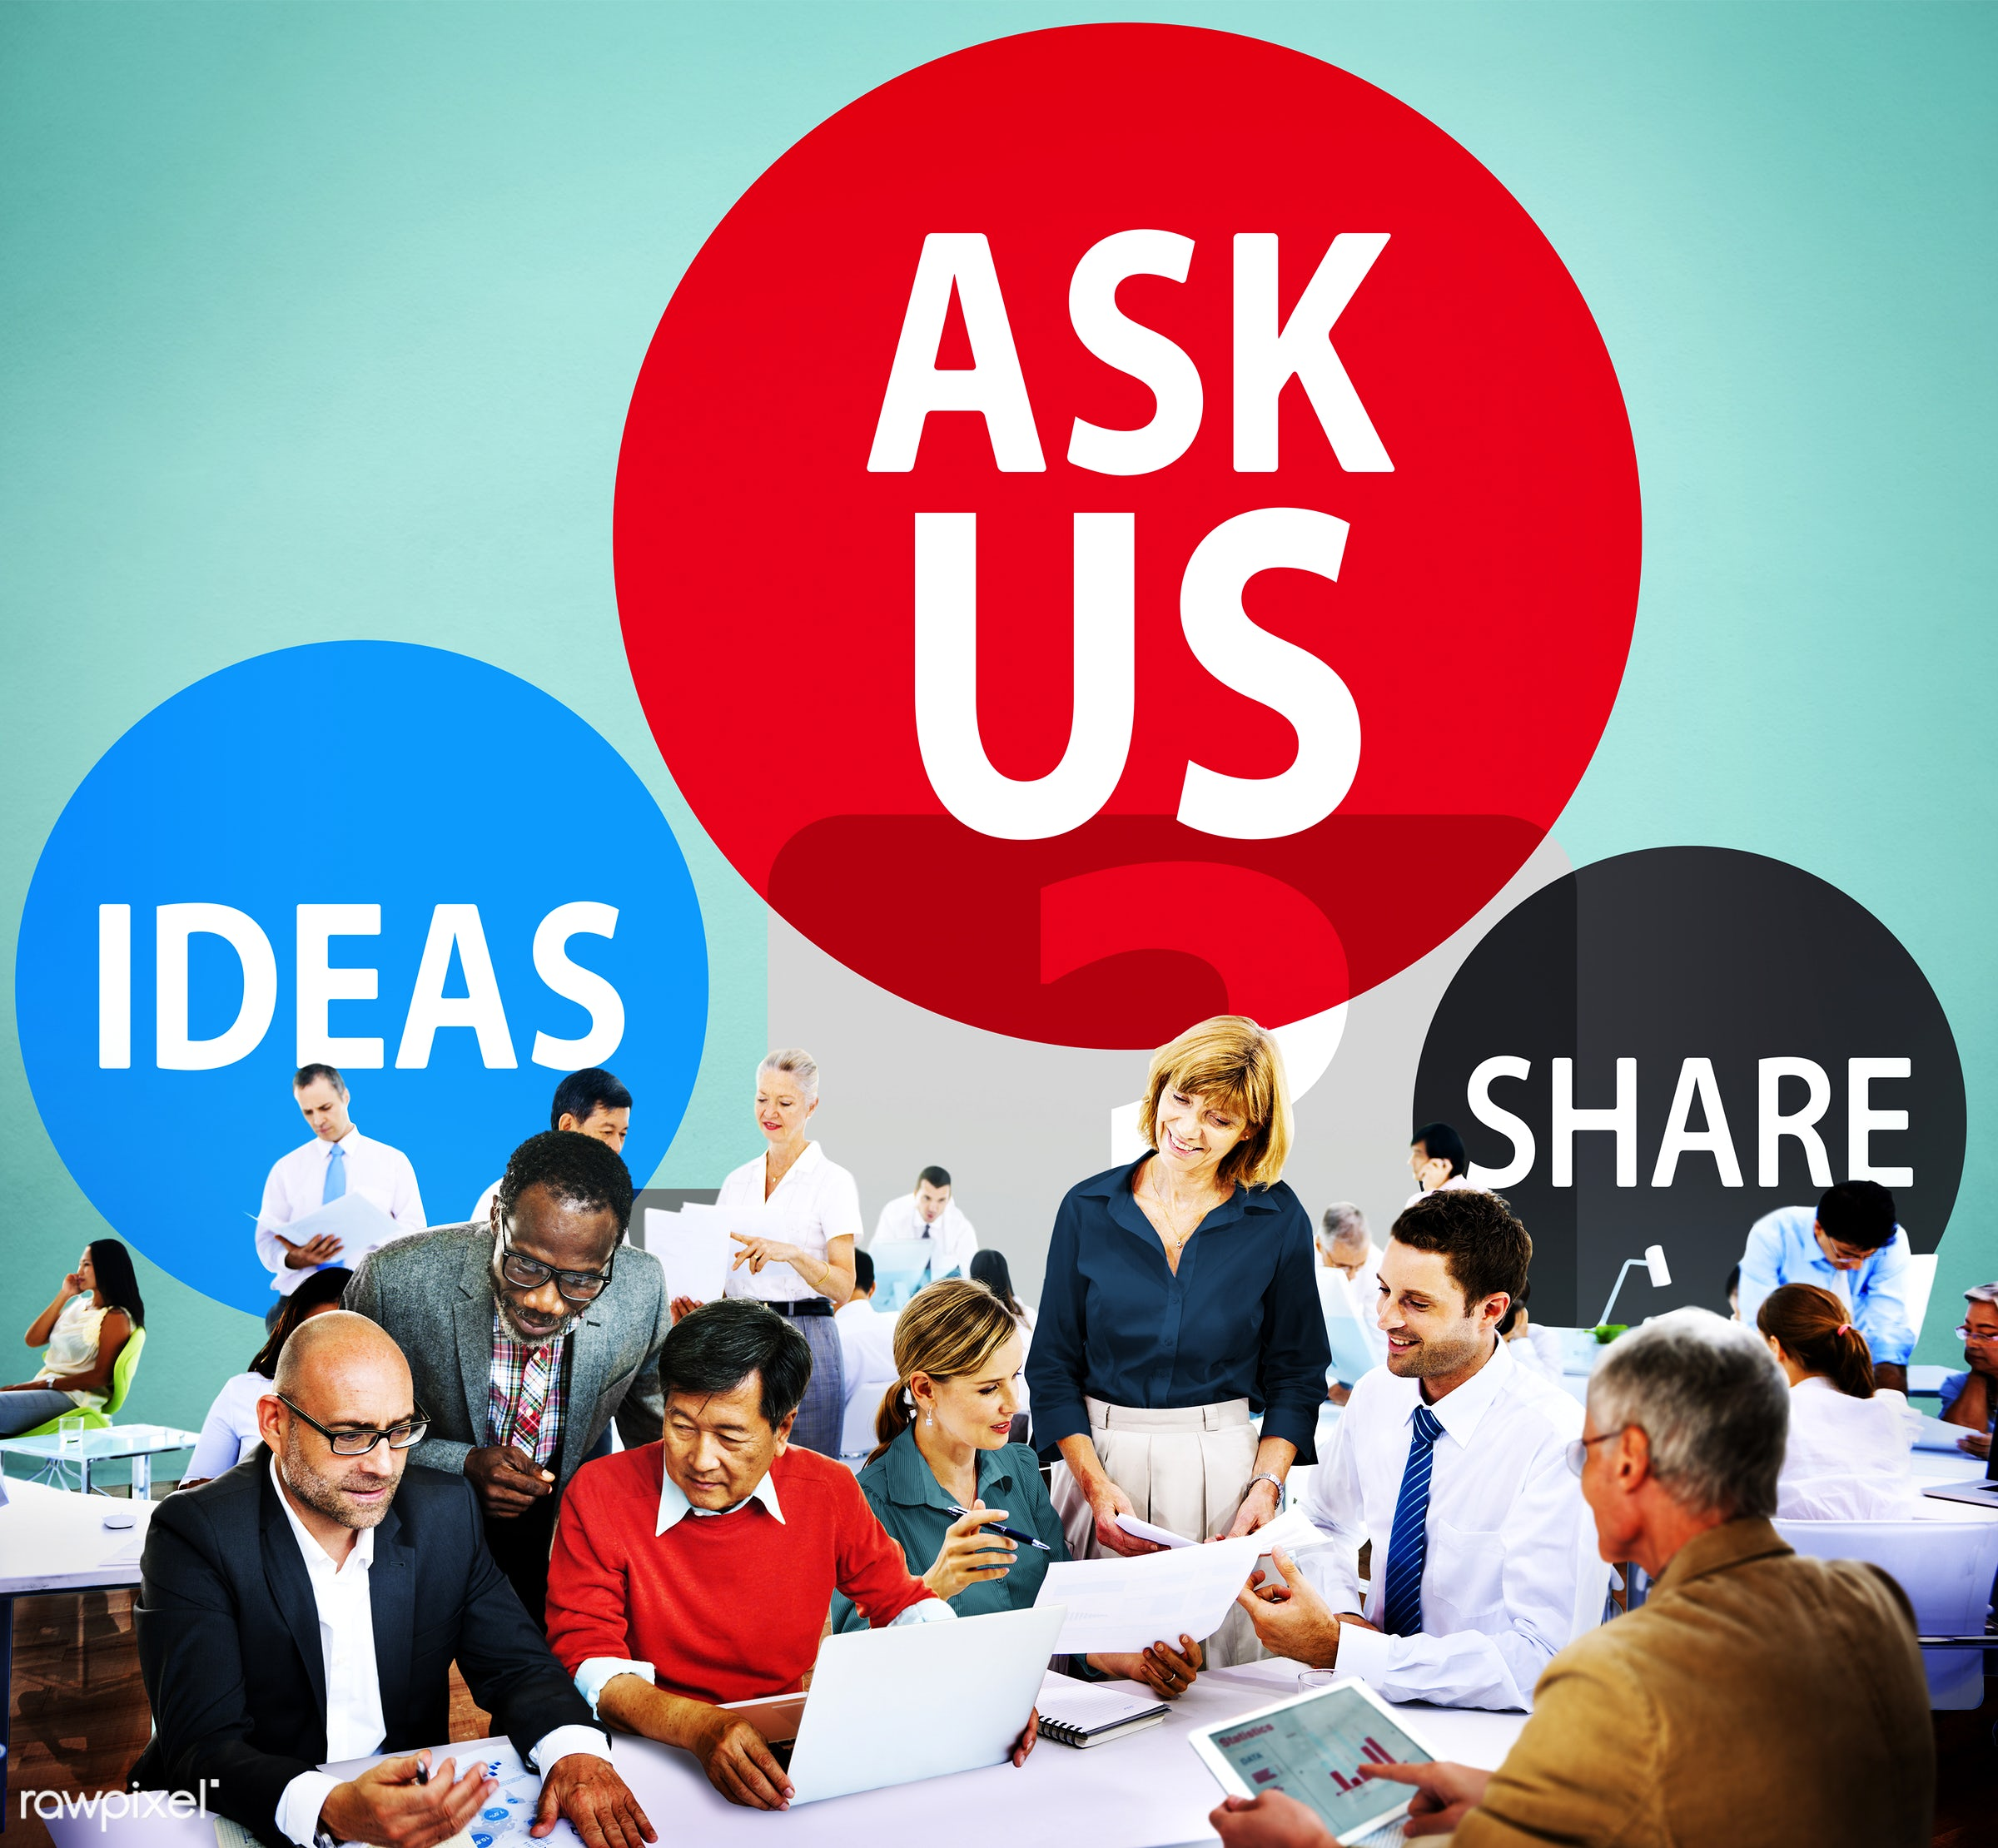 advice, analysis, answers, ask us, assistance, business, business people, businessmen, businesswomen, busy, care,...